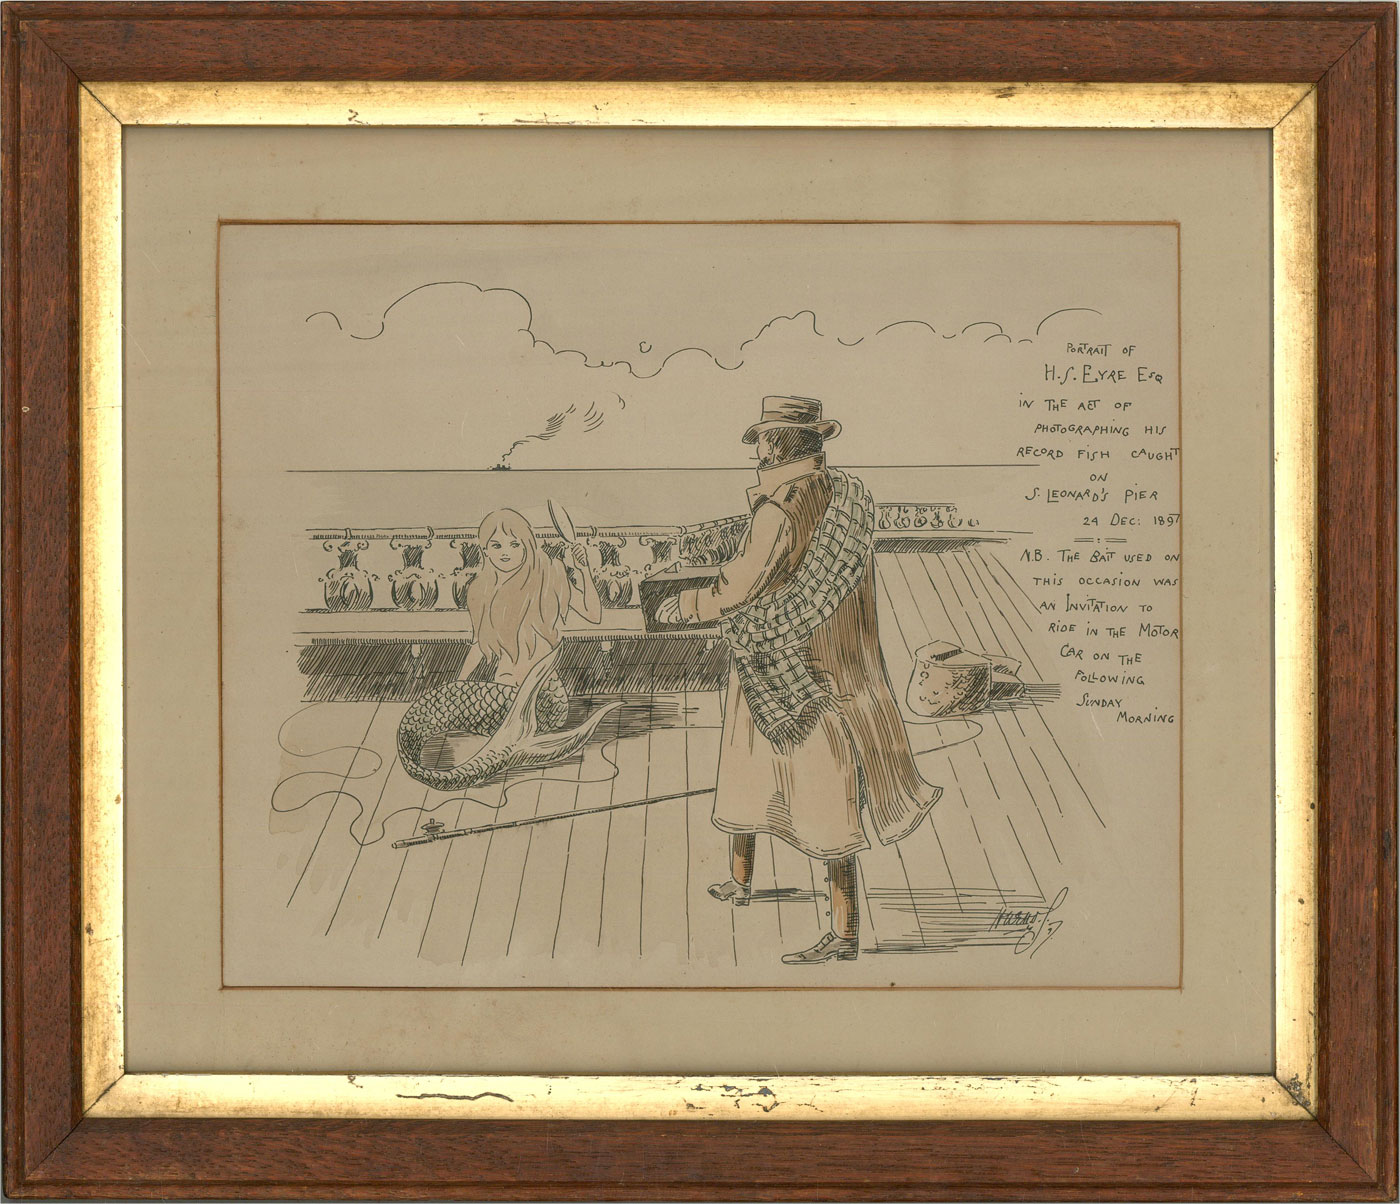 1897 Pen and Ink Drawing - The Big Catch